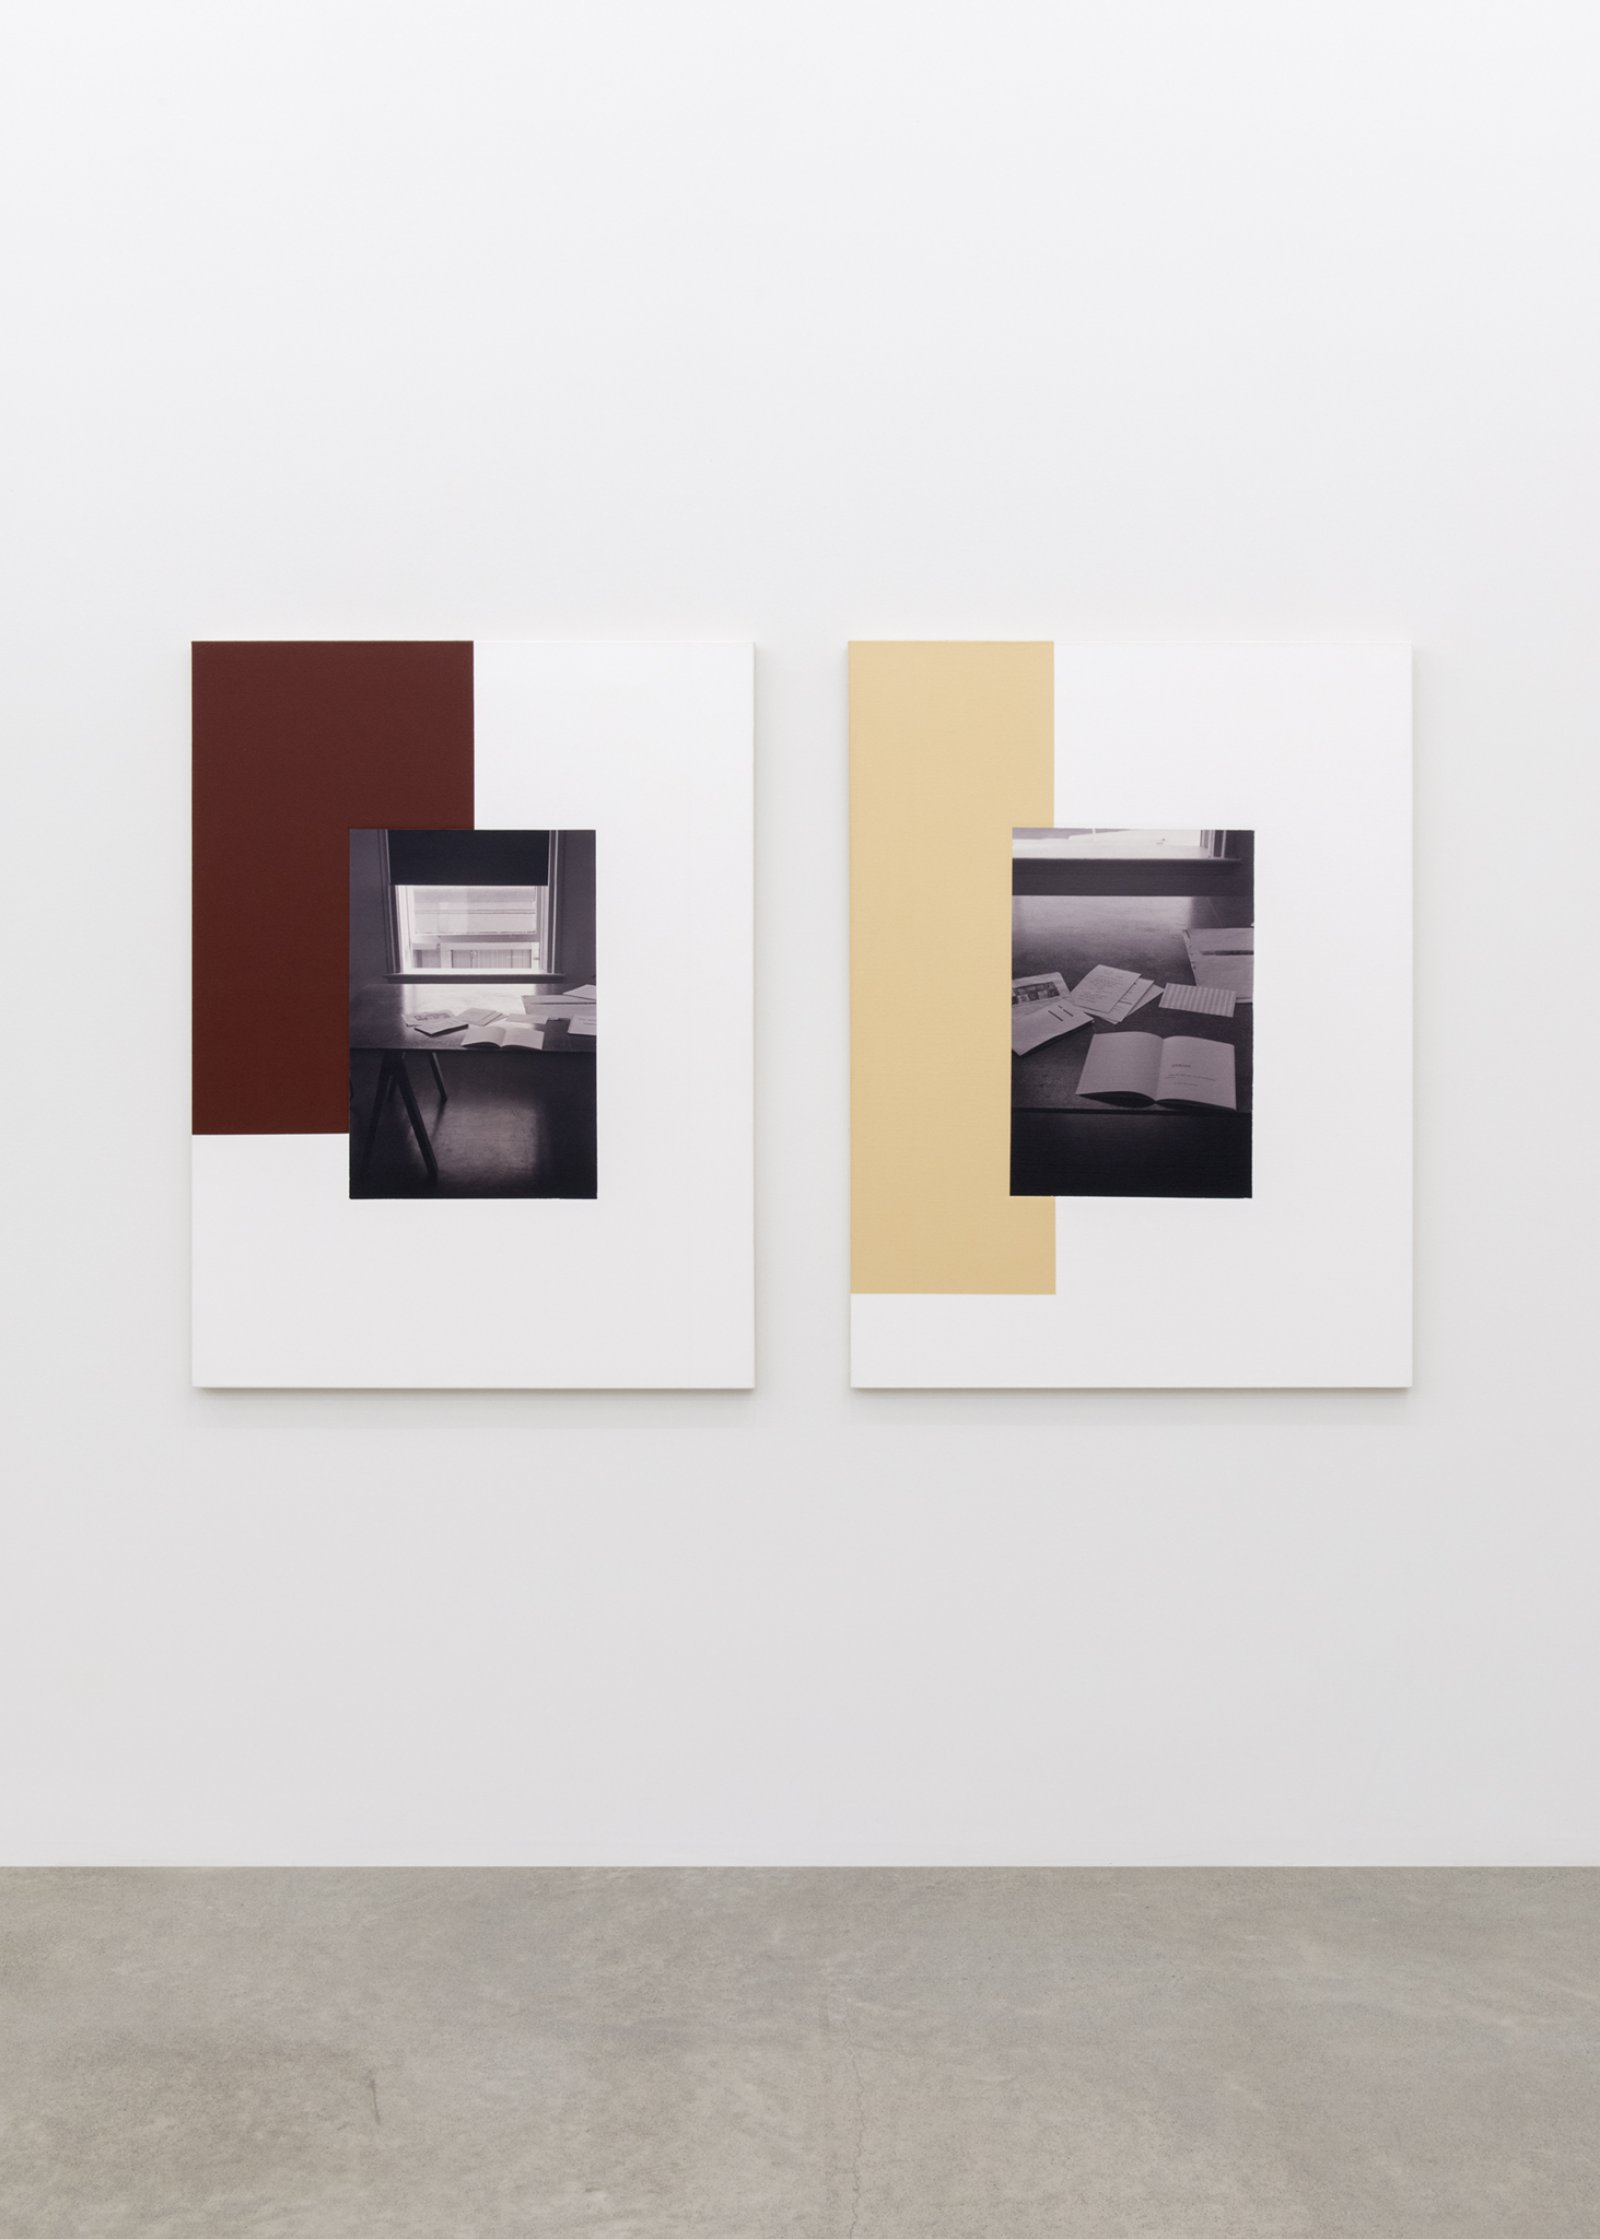 Ian Wallace, The Table (Image/Text) I, II, 1979–2007, photolaminate and acrylic on canvas, each 48 x 72 in. (122 x 183 cm) by Ian Wallace